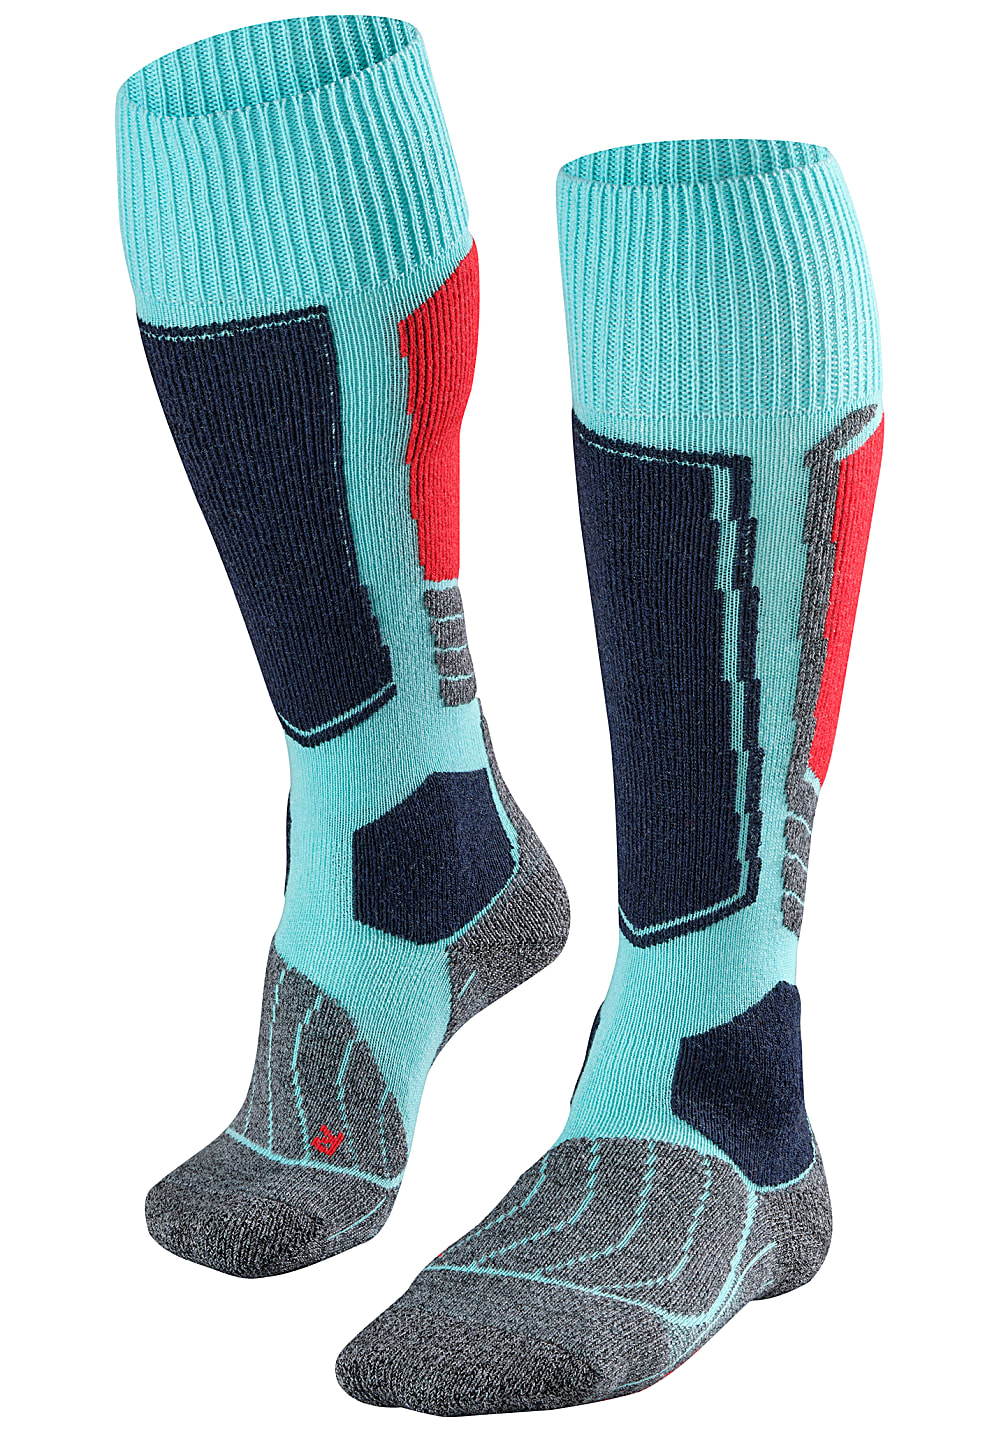 Socken - FALKE SK 1 Snowboard Socken für Damen Blau  - Onlineshop Planet Sports